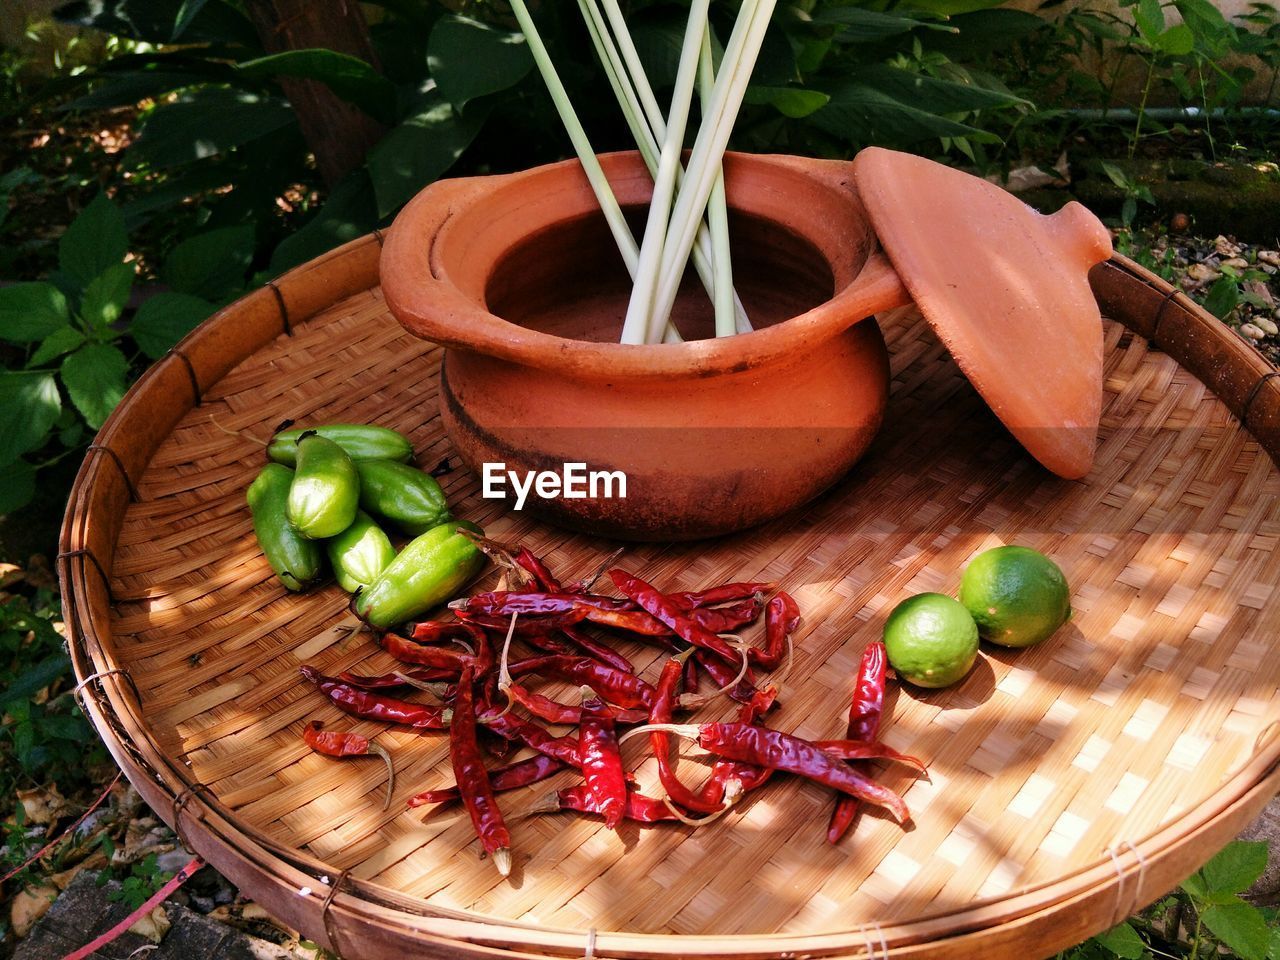 food and drink, food, vegetable, healthy eating, wellbeing, freshness, no people, high angle view, pepper, spice, chili pepper, fruit, wood - material, container, green color, table, still life, close-up, day, onion, red chili pepper, herb